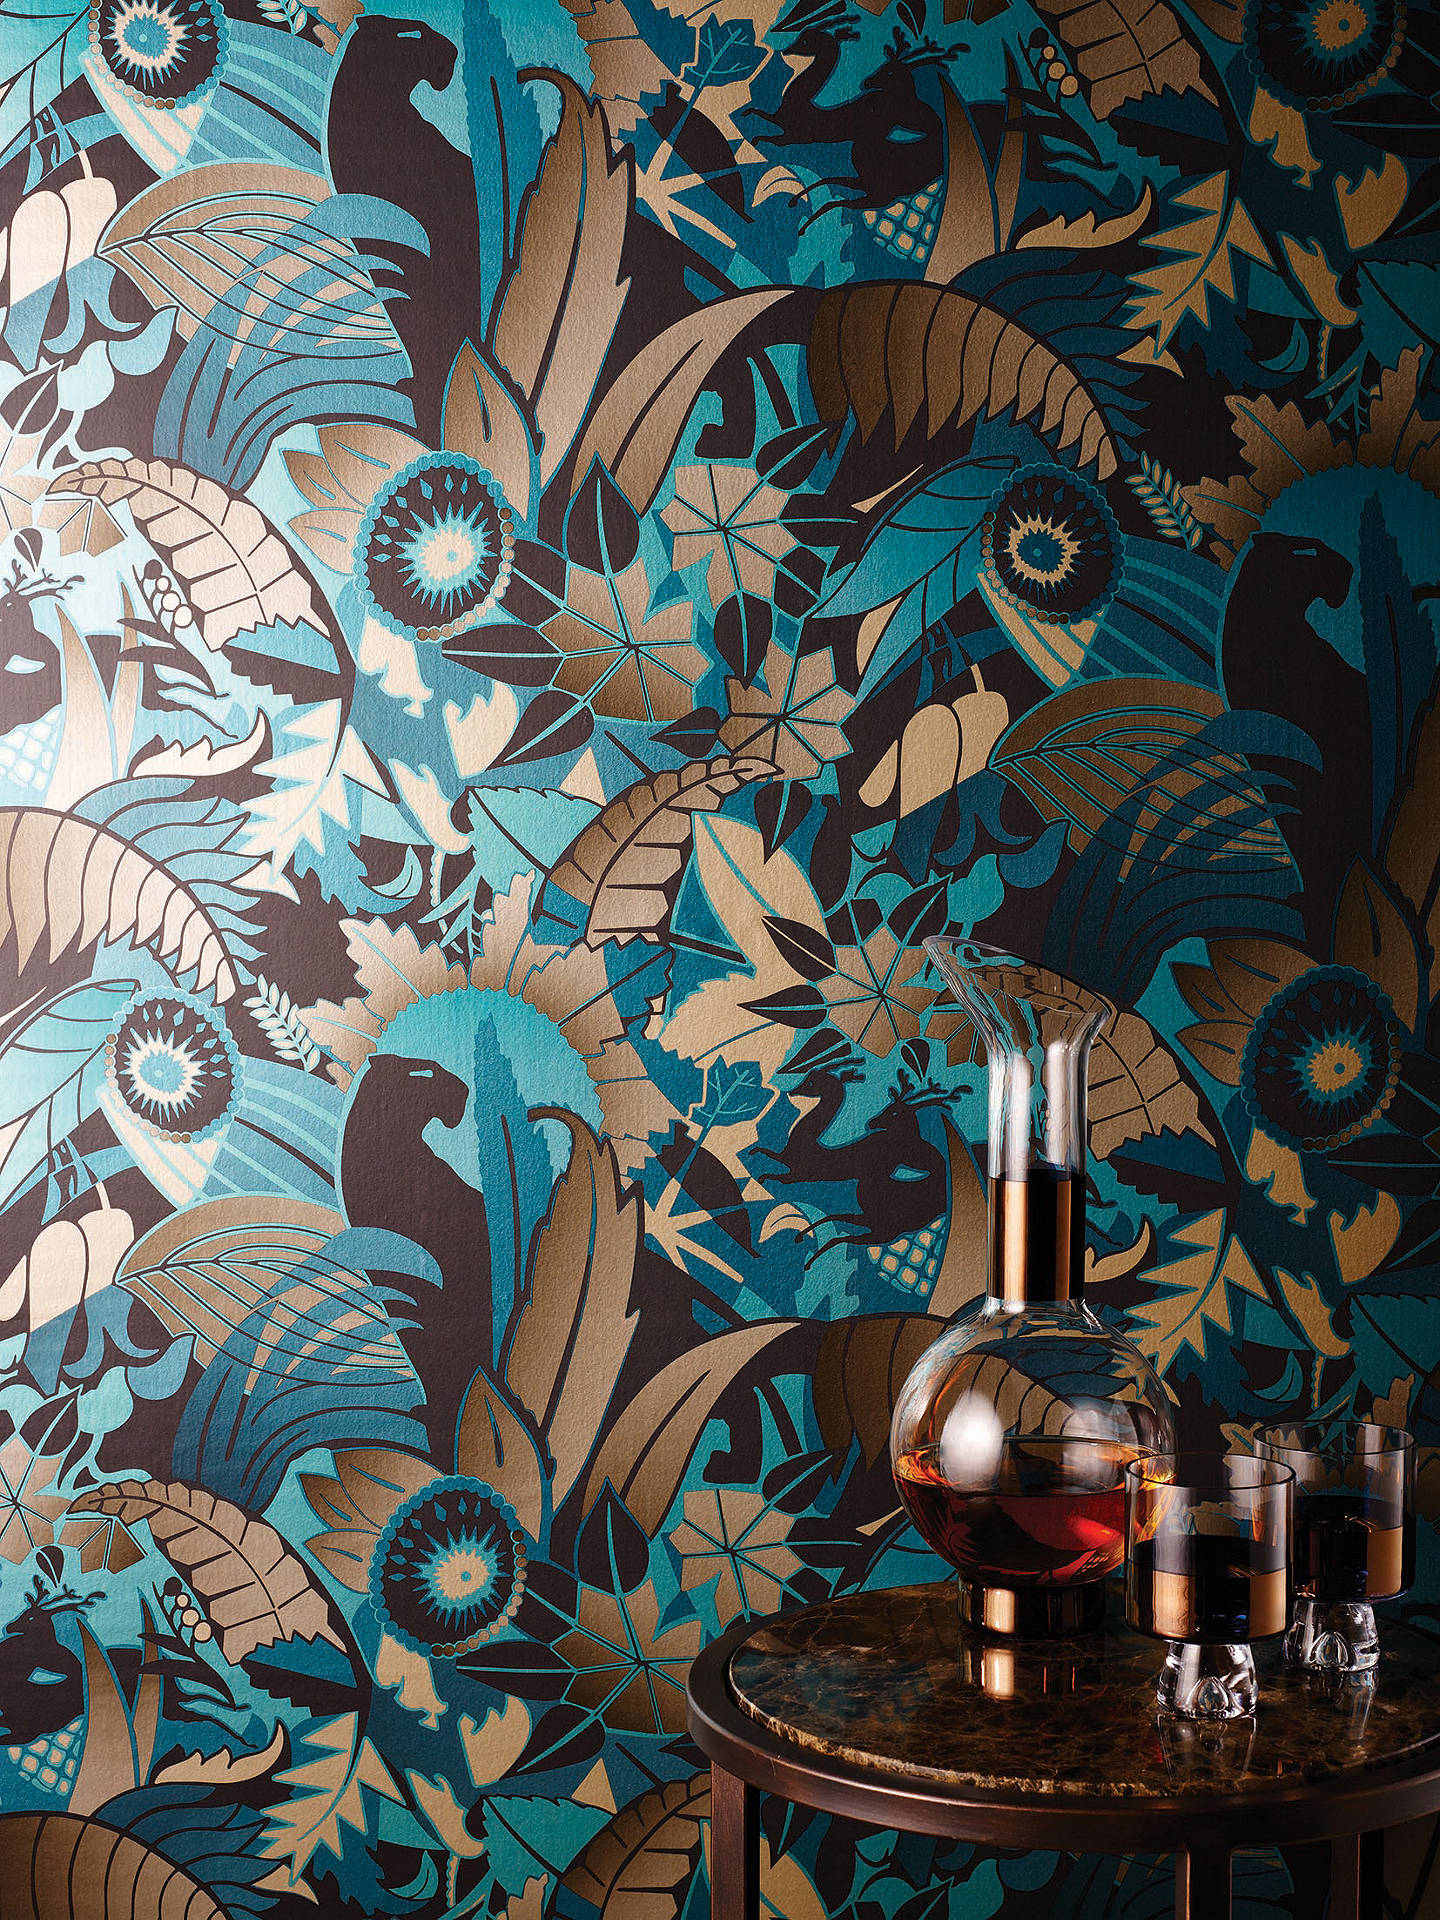 Buy Osborne & Little Fantasque Wallpaper, Turquoise W6890-01 Online at johnlewis.com